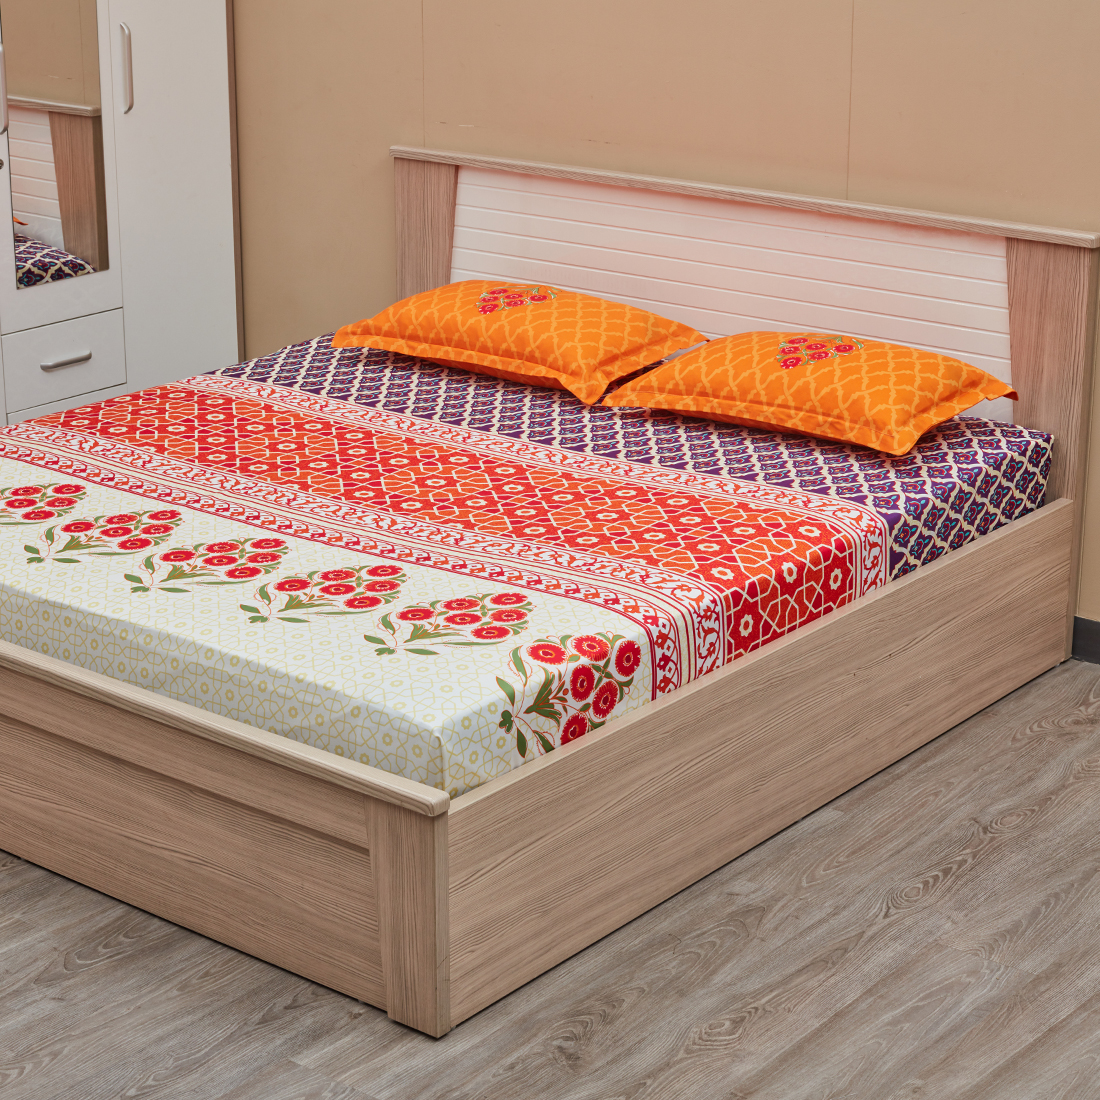 Casablanca Double Bedsheet Red And Lavender Floral Cotton Double Bed Sheets in Multicolor Colour by Portico